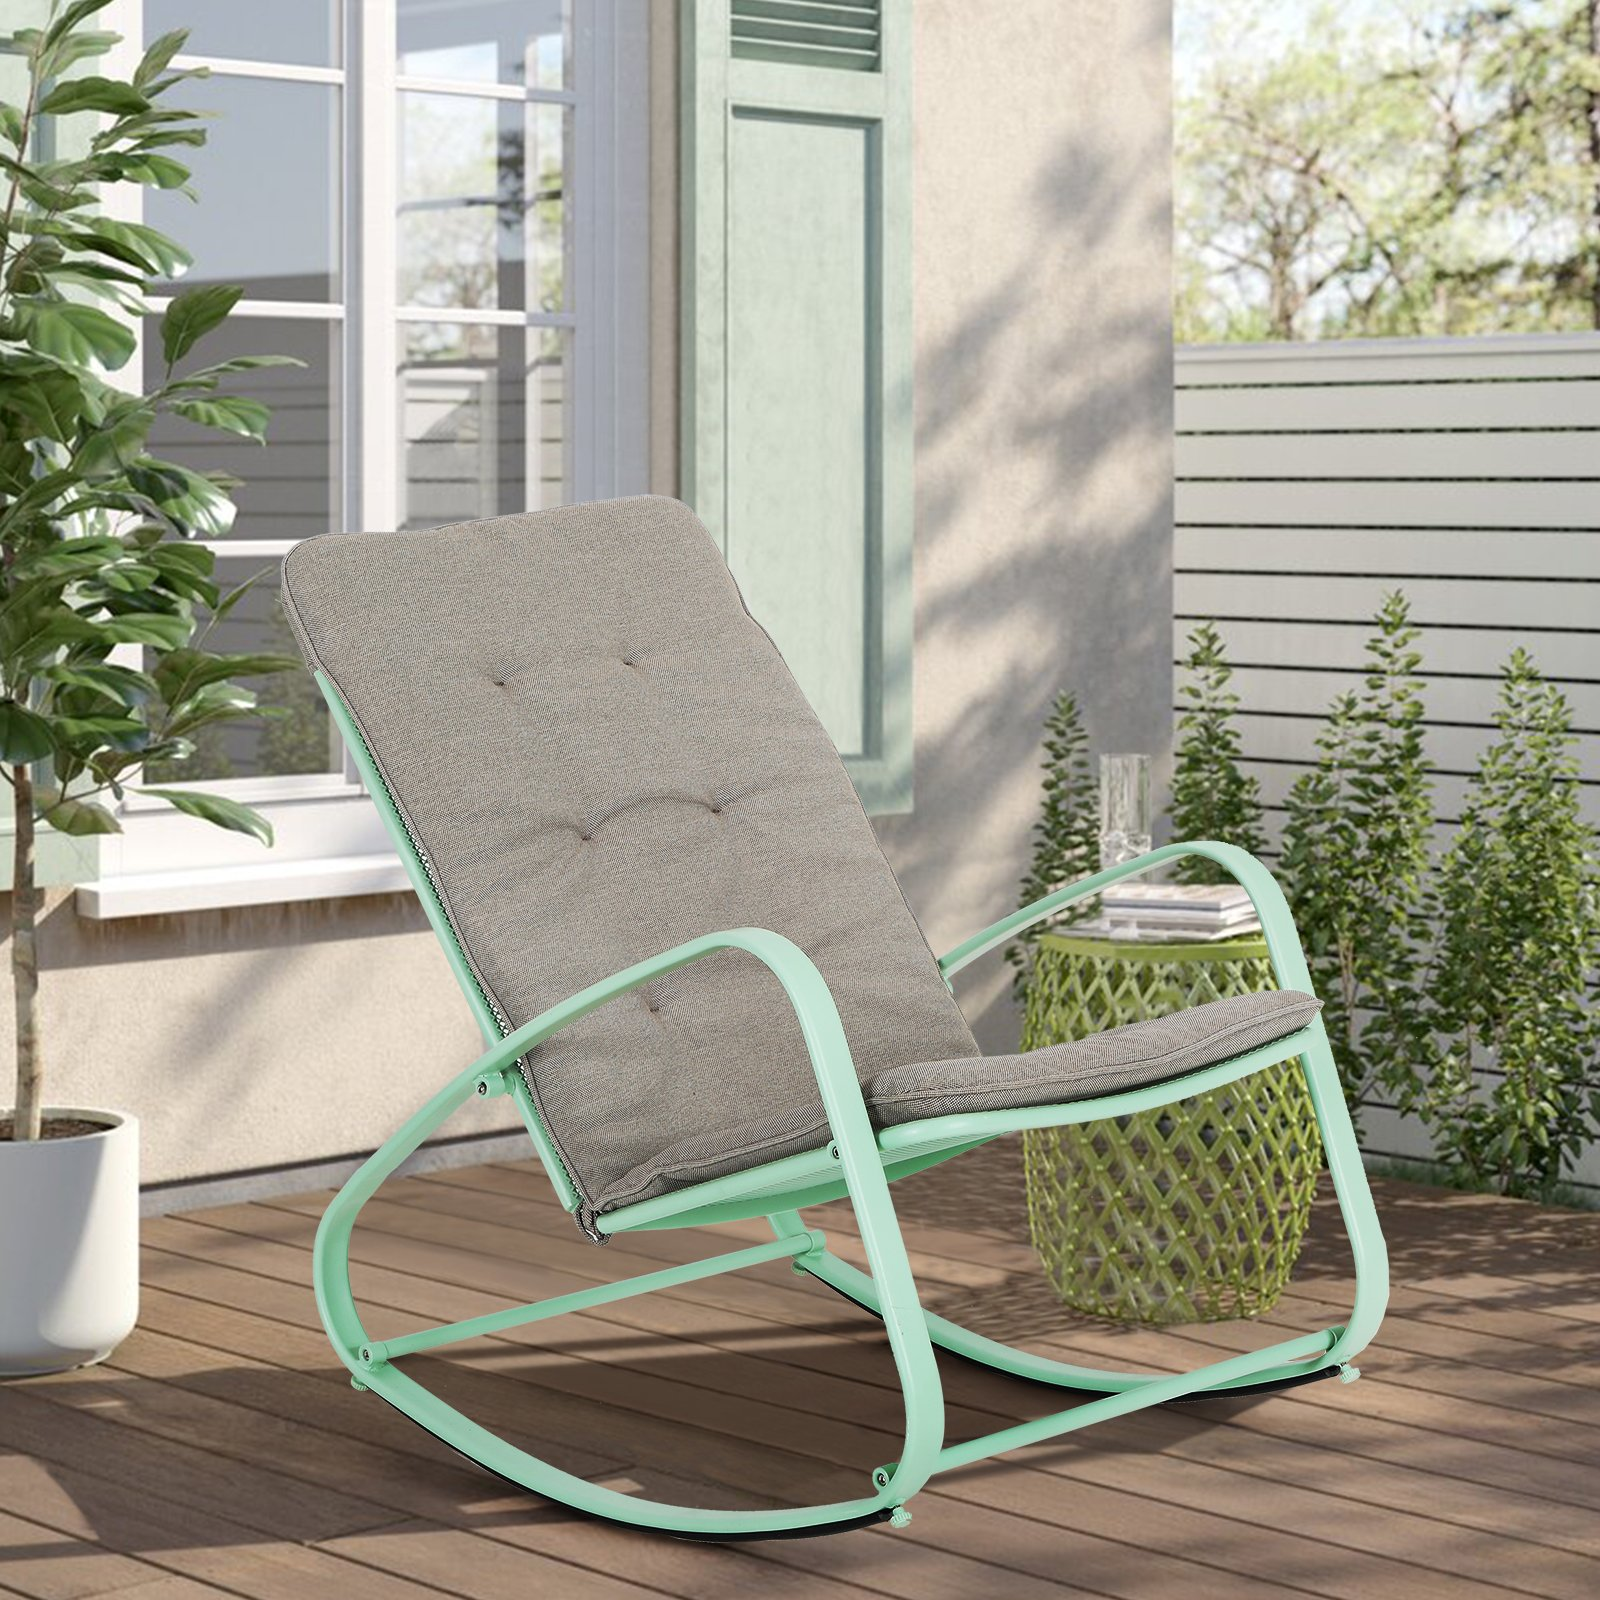 captiva designs outdoor rocking chair metal rocking chair with cushion